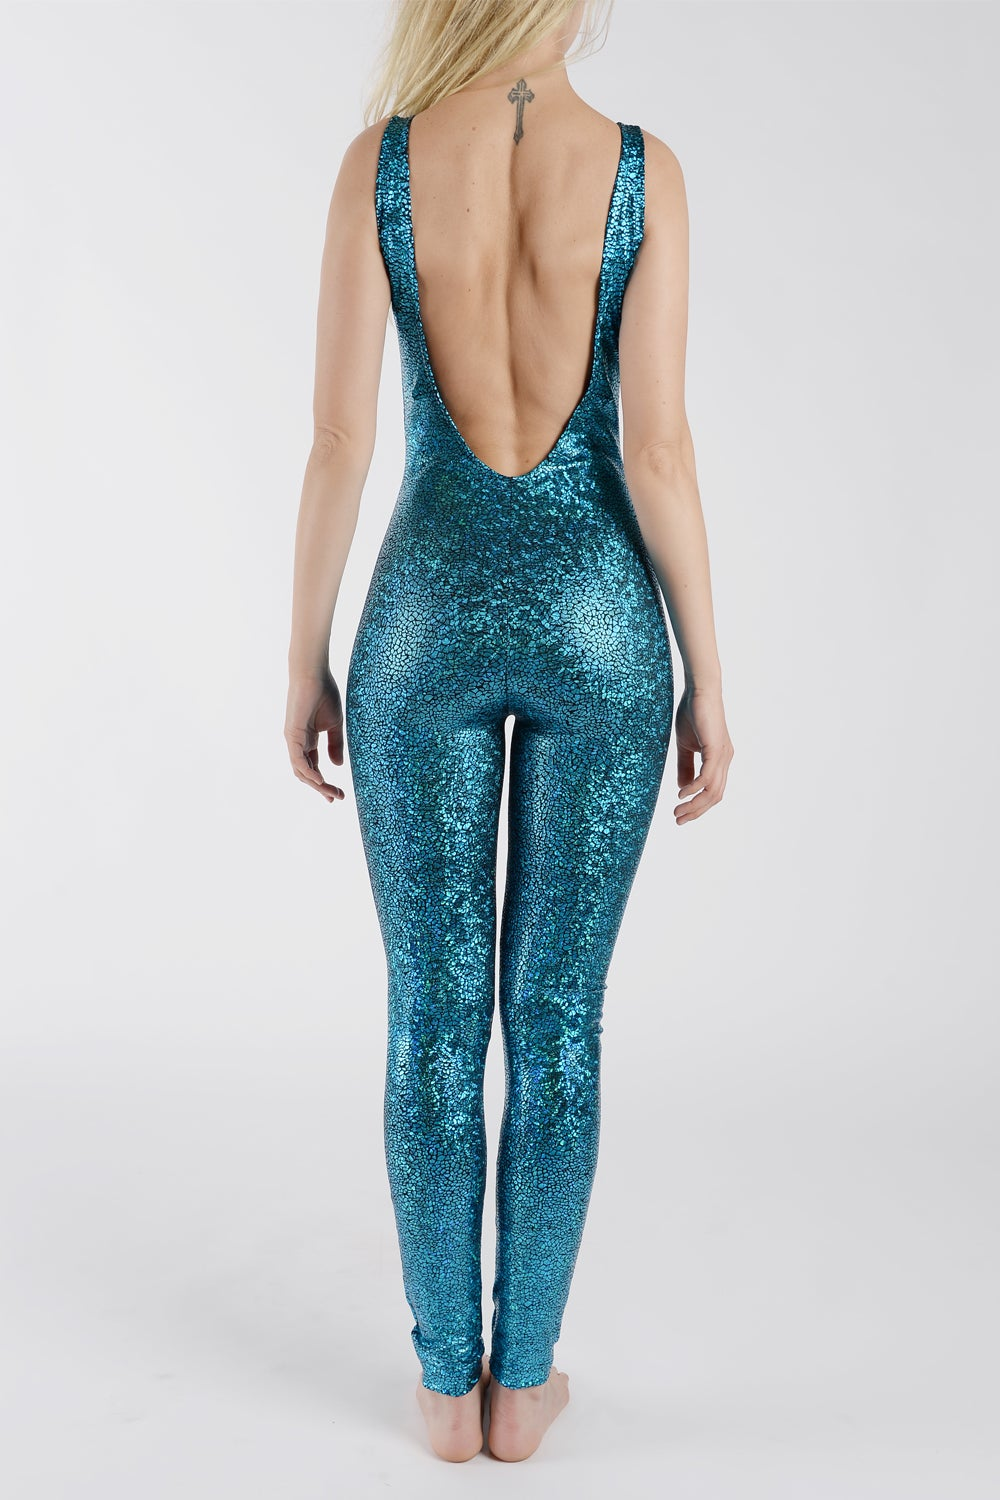 Image of Turquoise Disco Mermaid Catsuit